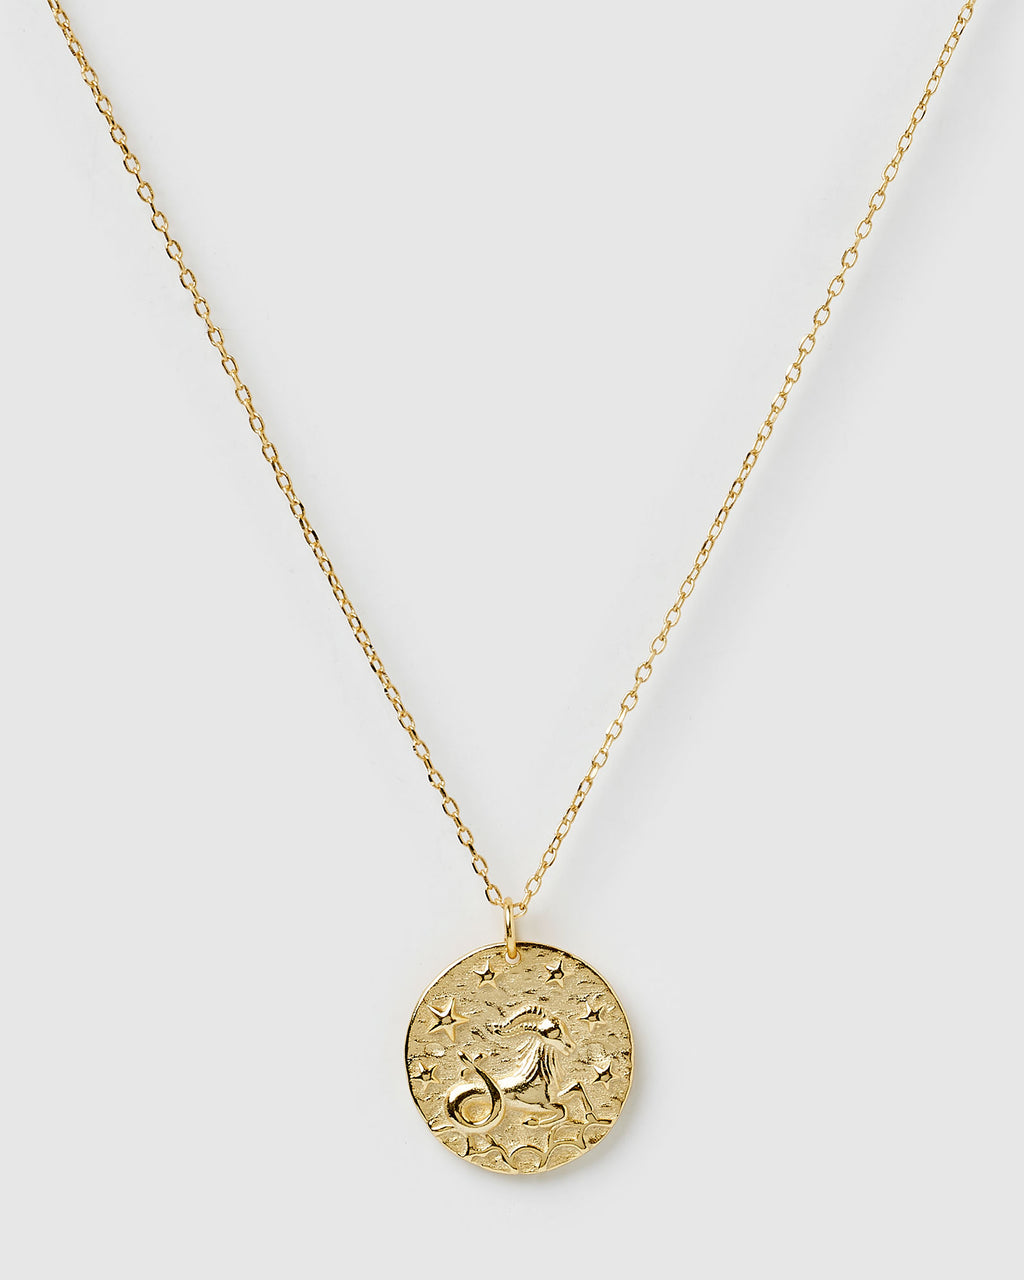 Izoa Star Sign Necklace Capricorn Gold